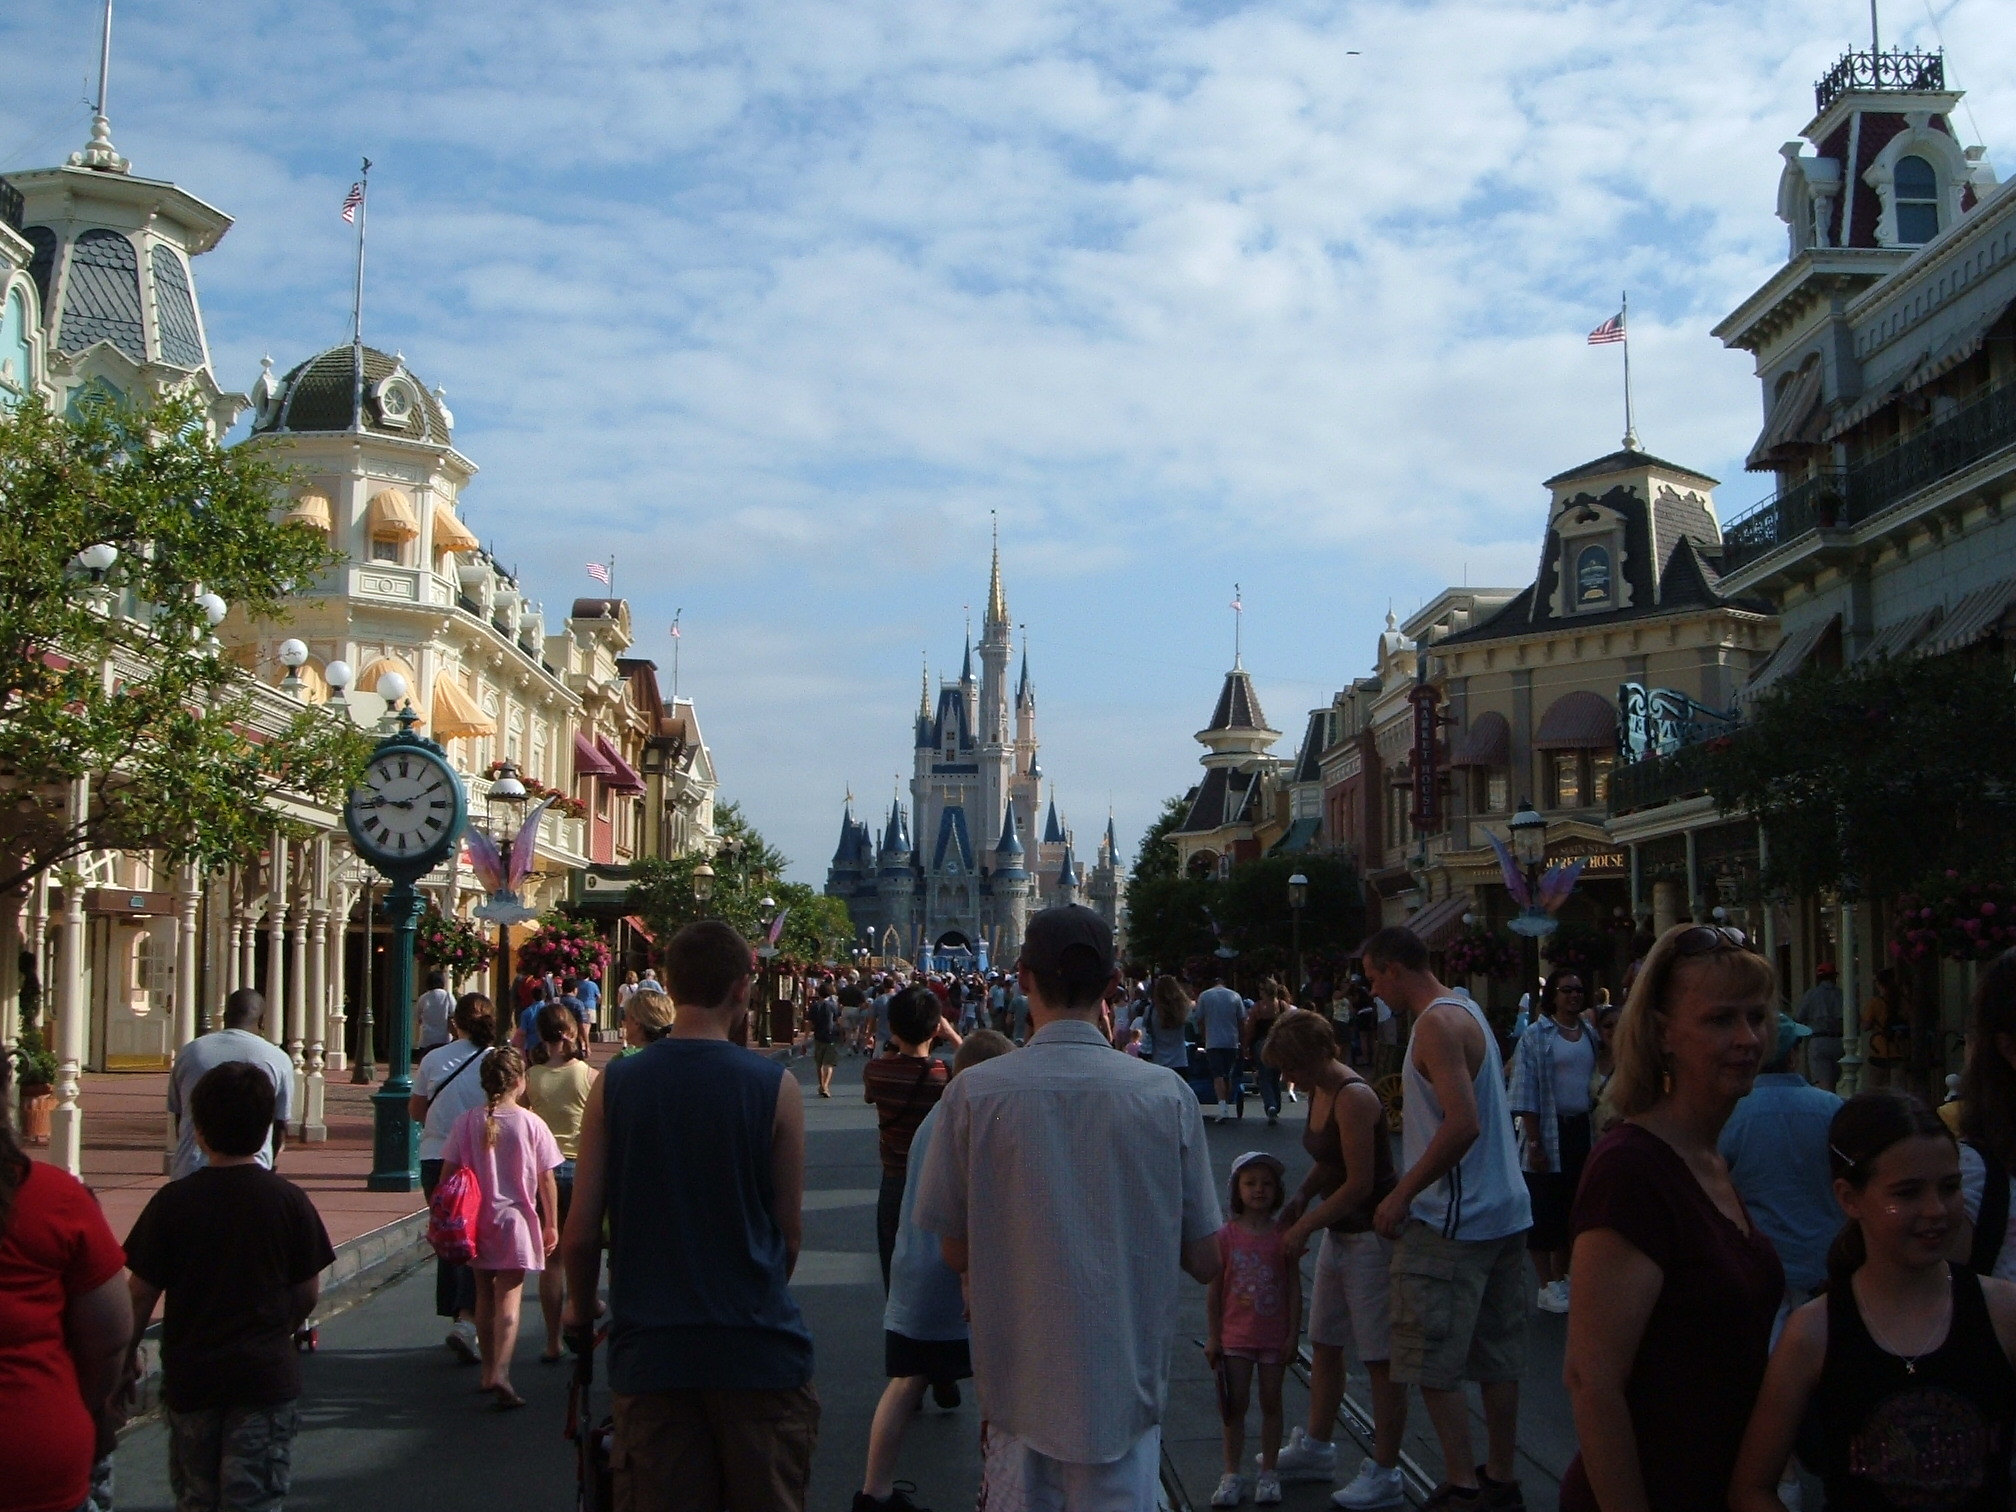 People at Main Street in Disney World